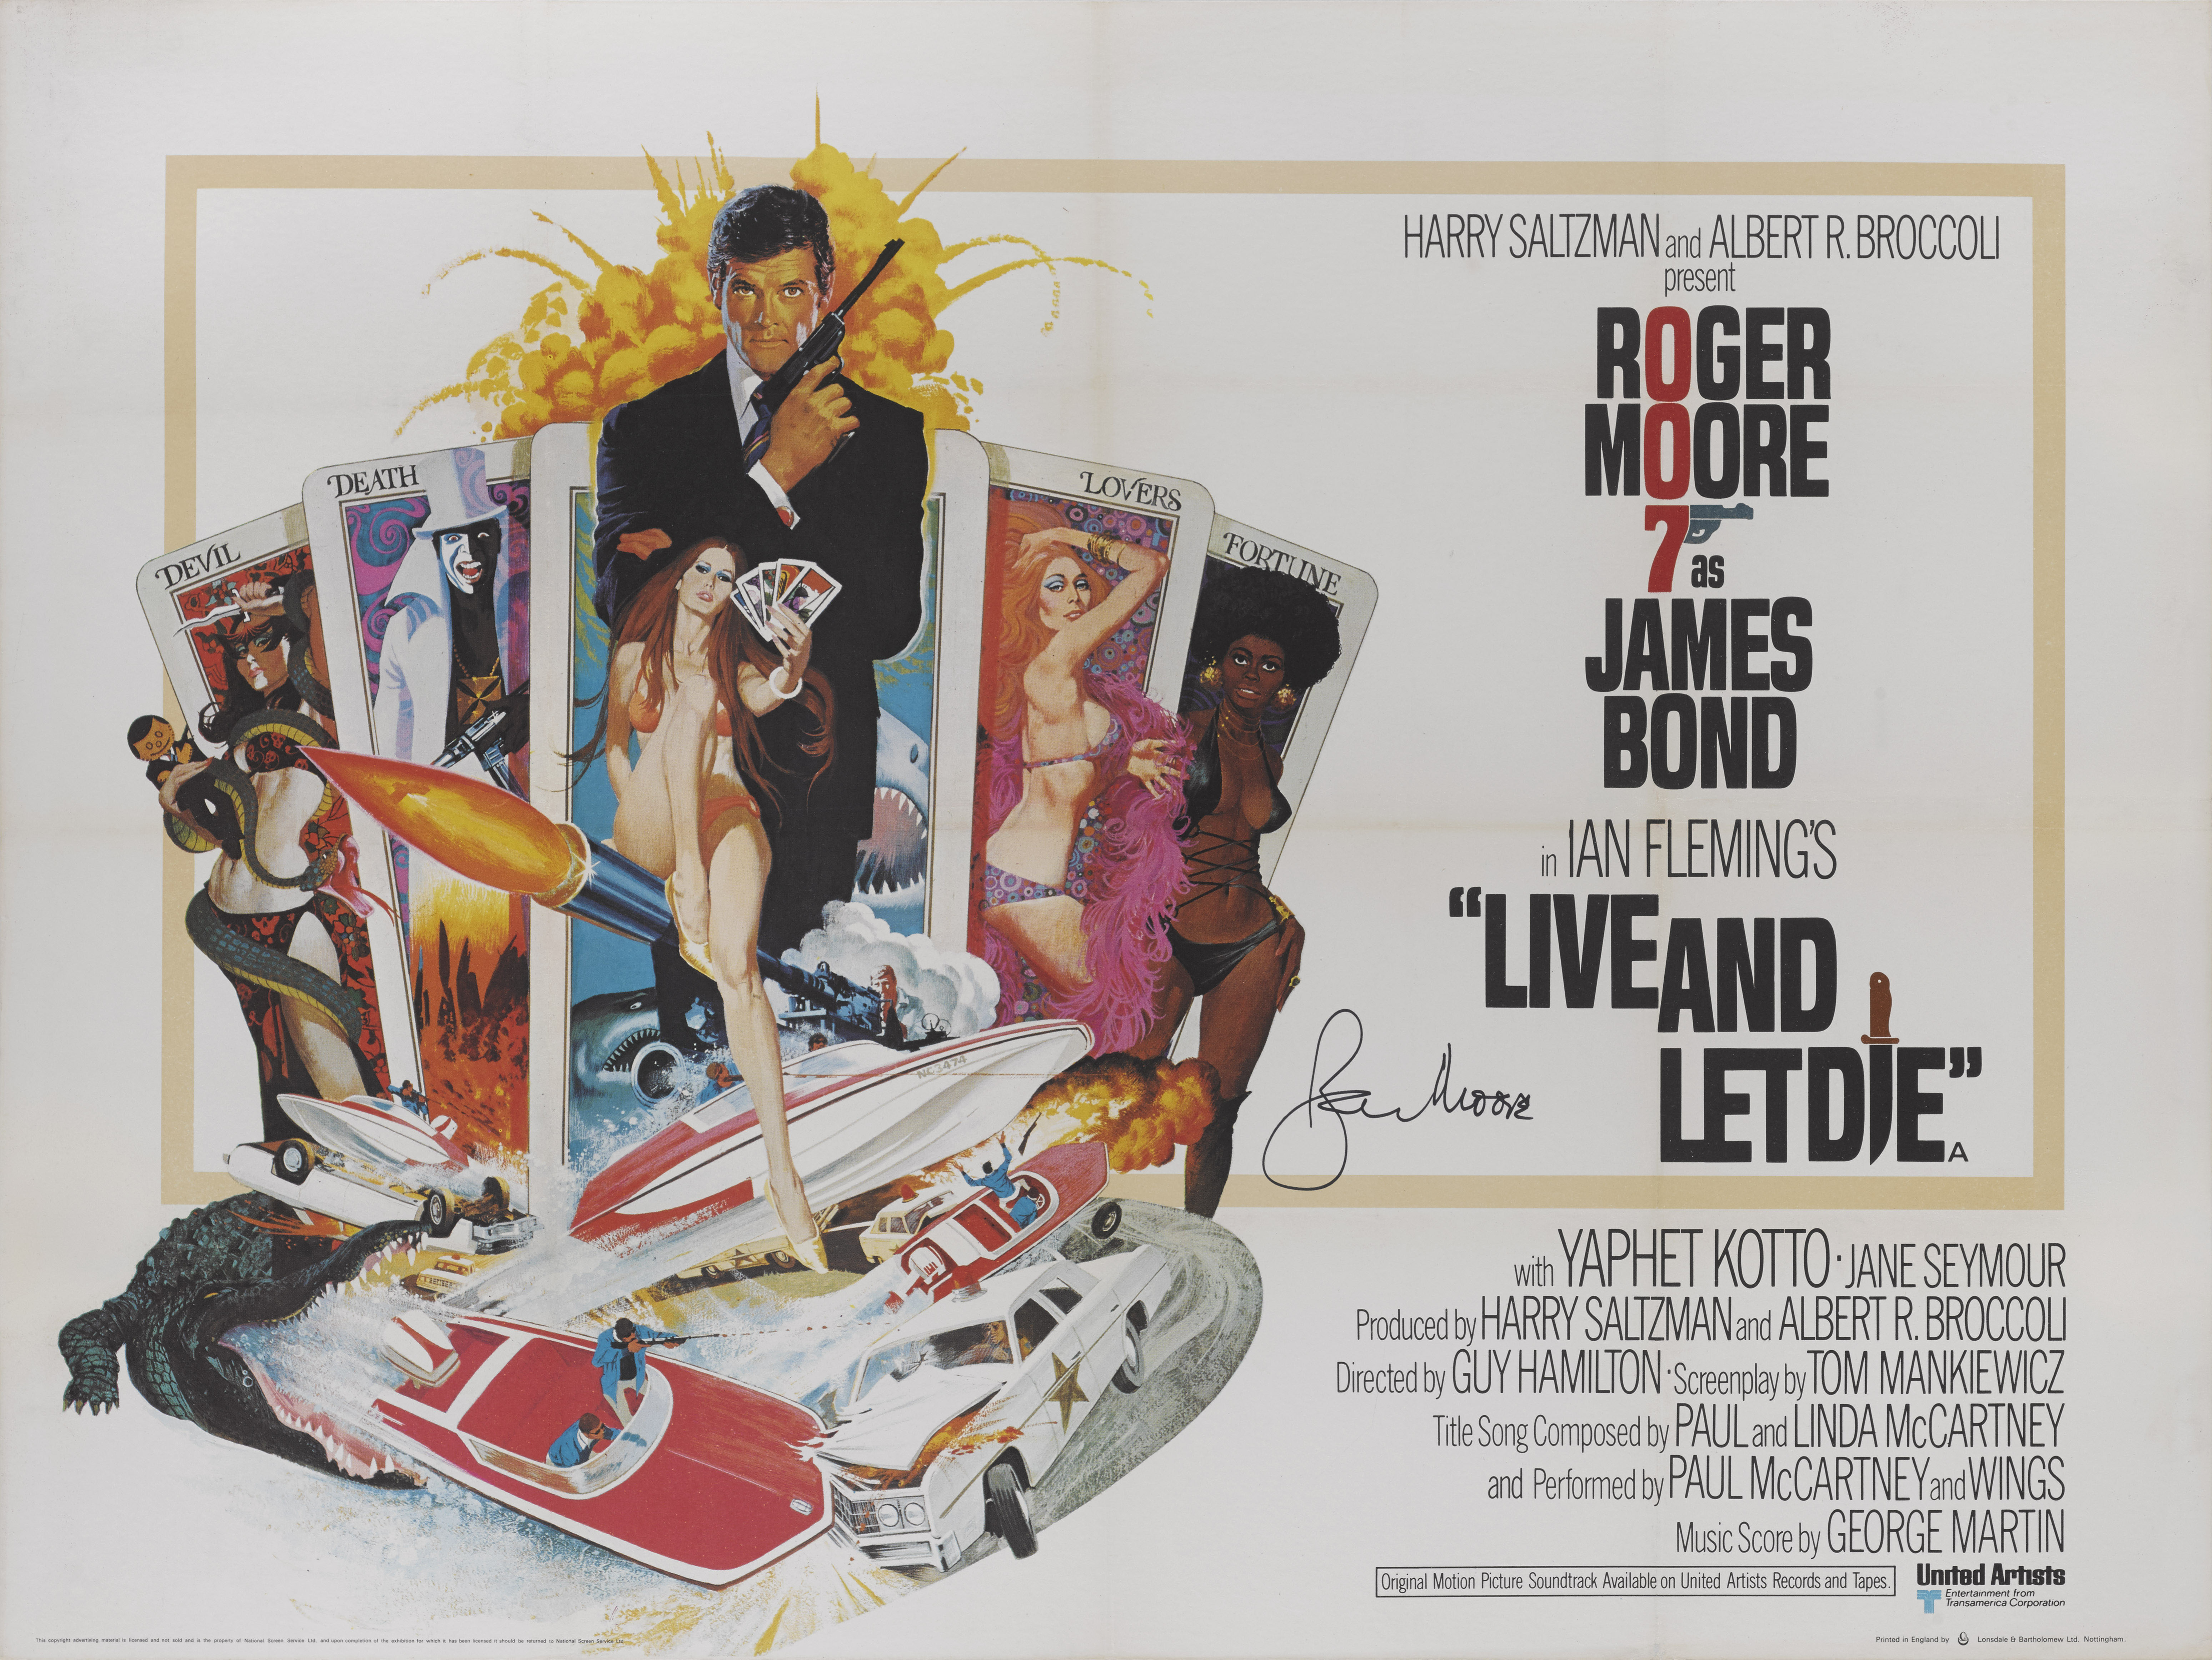 LIVE AND LET DIE (1973) POSTER, BRITISH, SIGNED BY ROGER MOORE